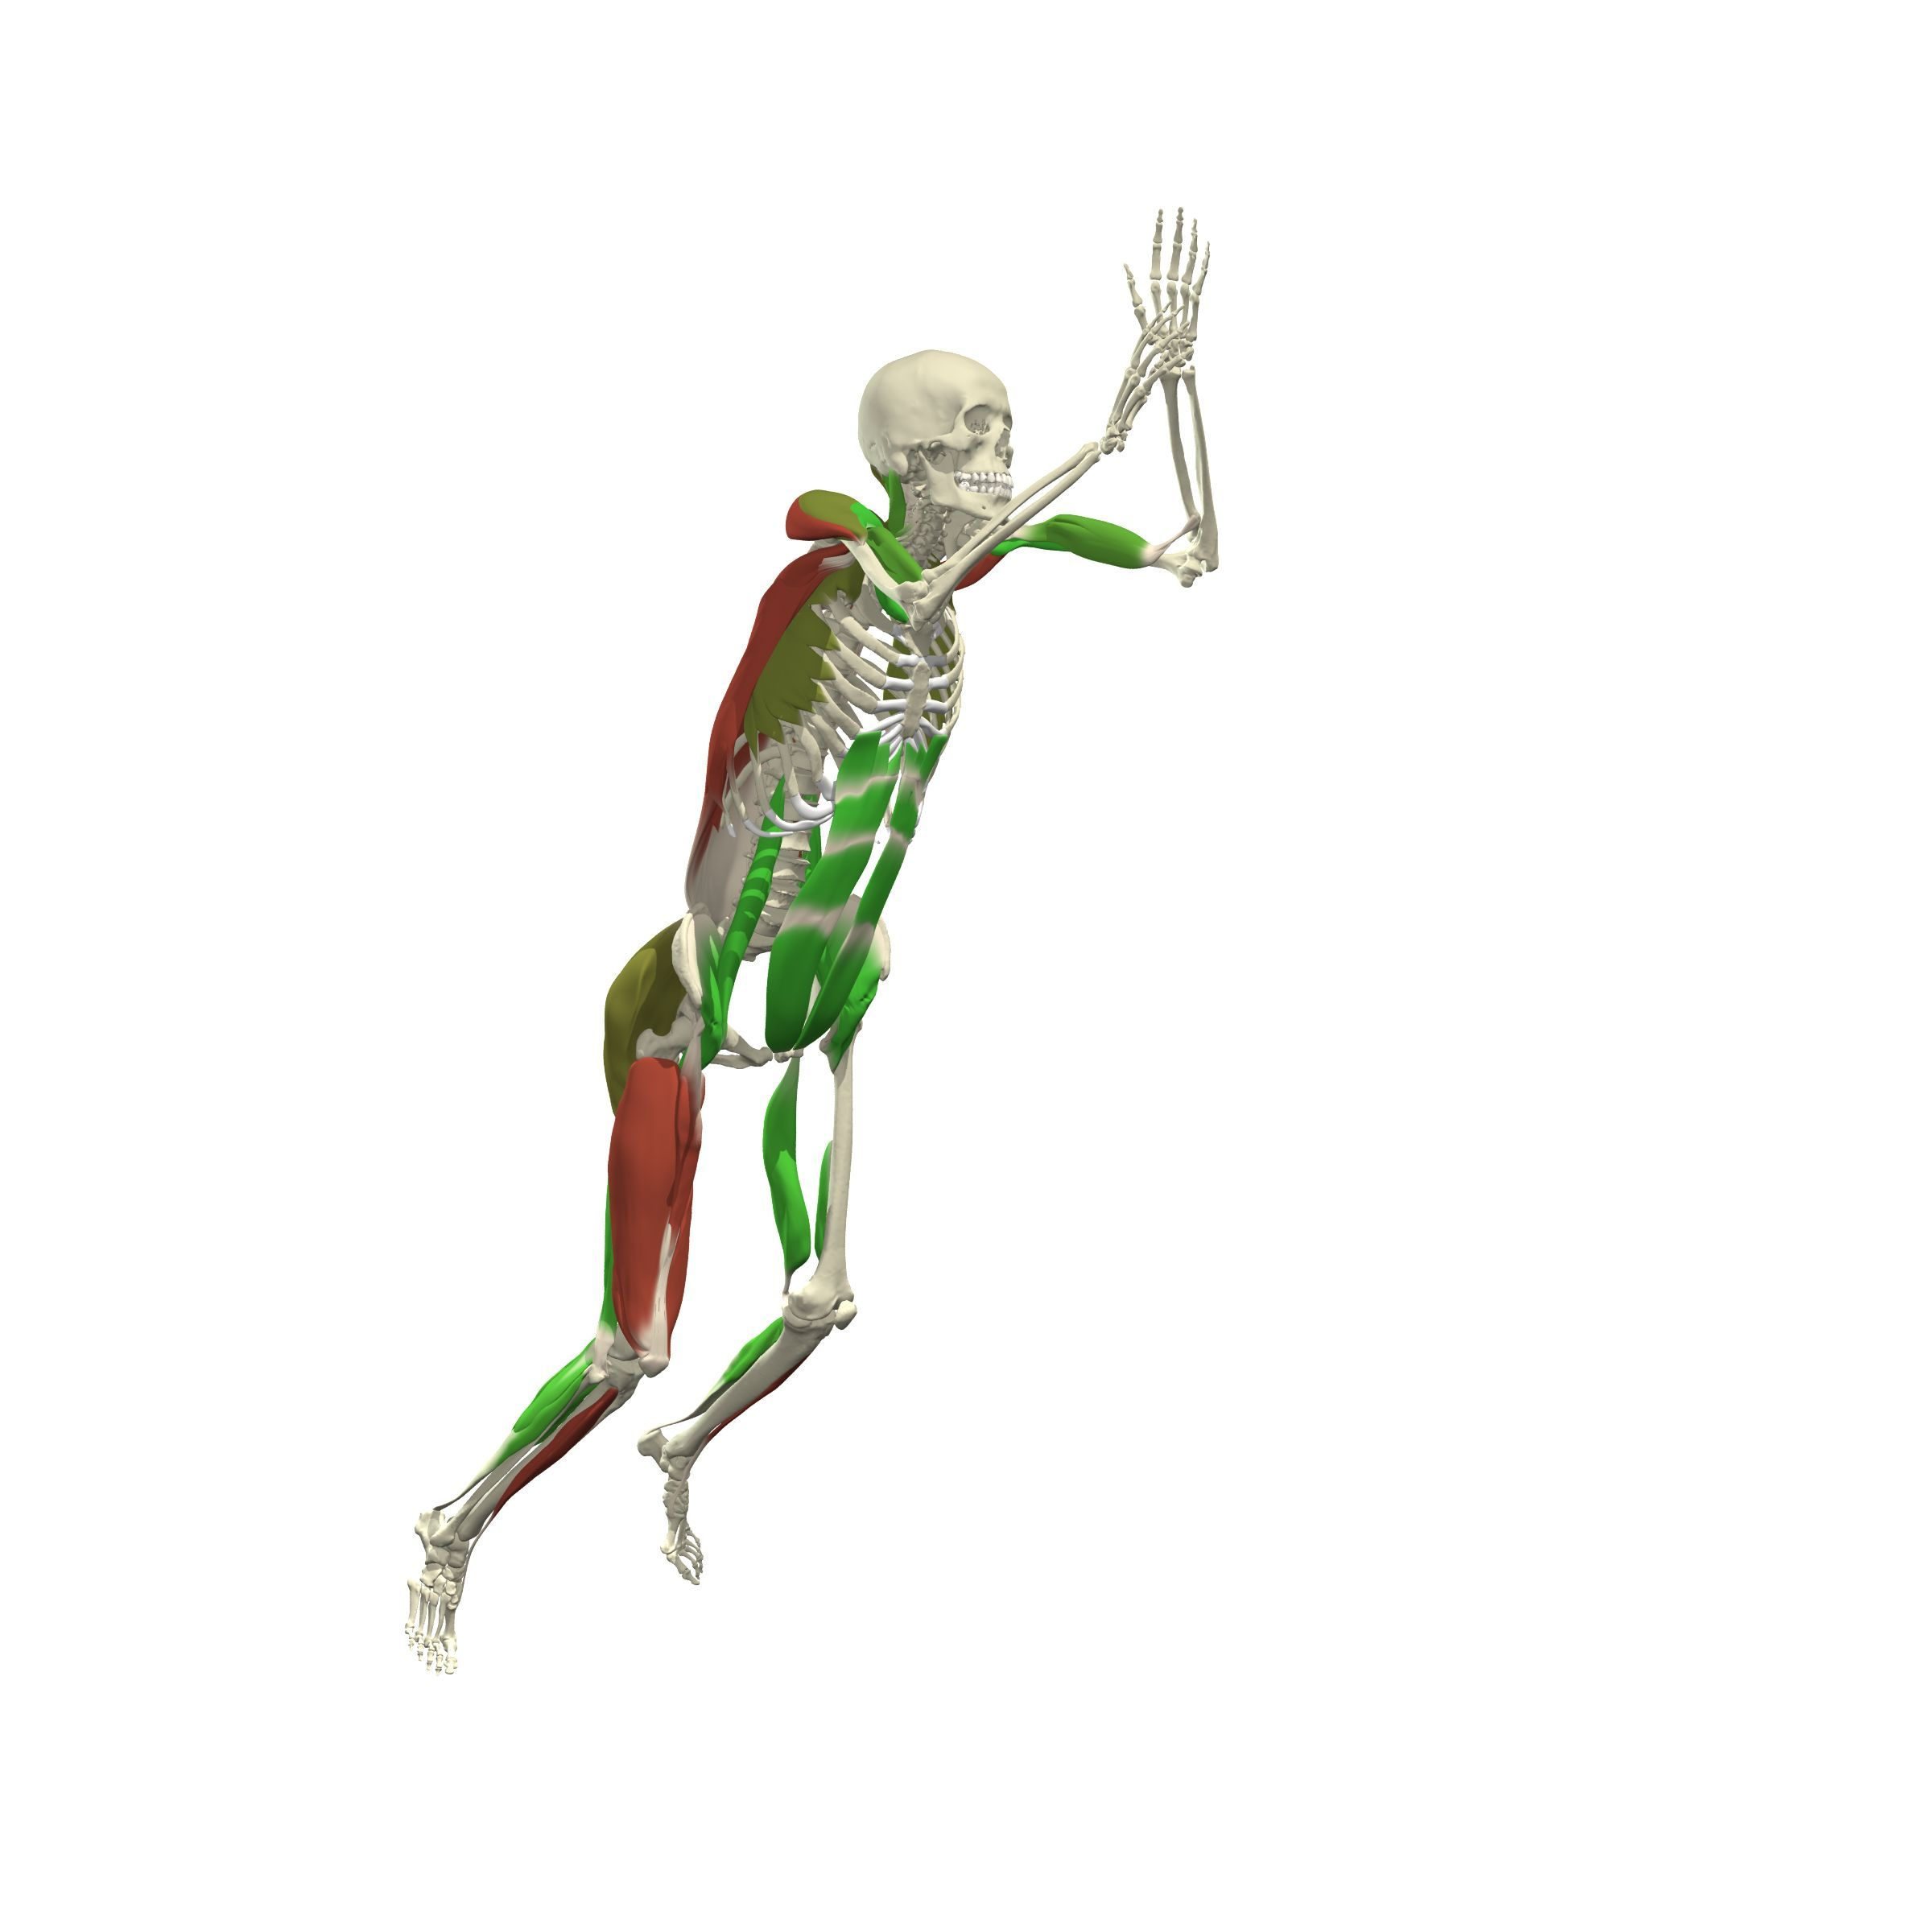 Primals 3d Human Functional Anatomy Demonstrates Muscle Movements